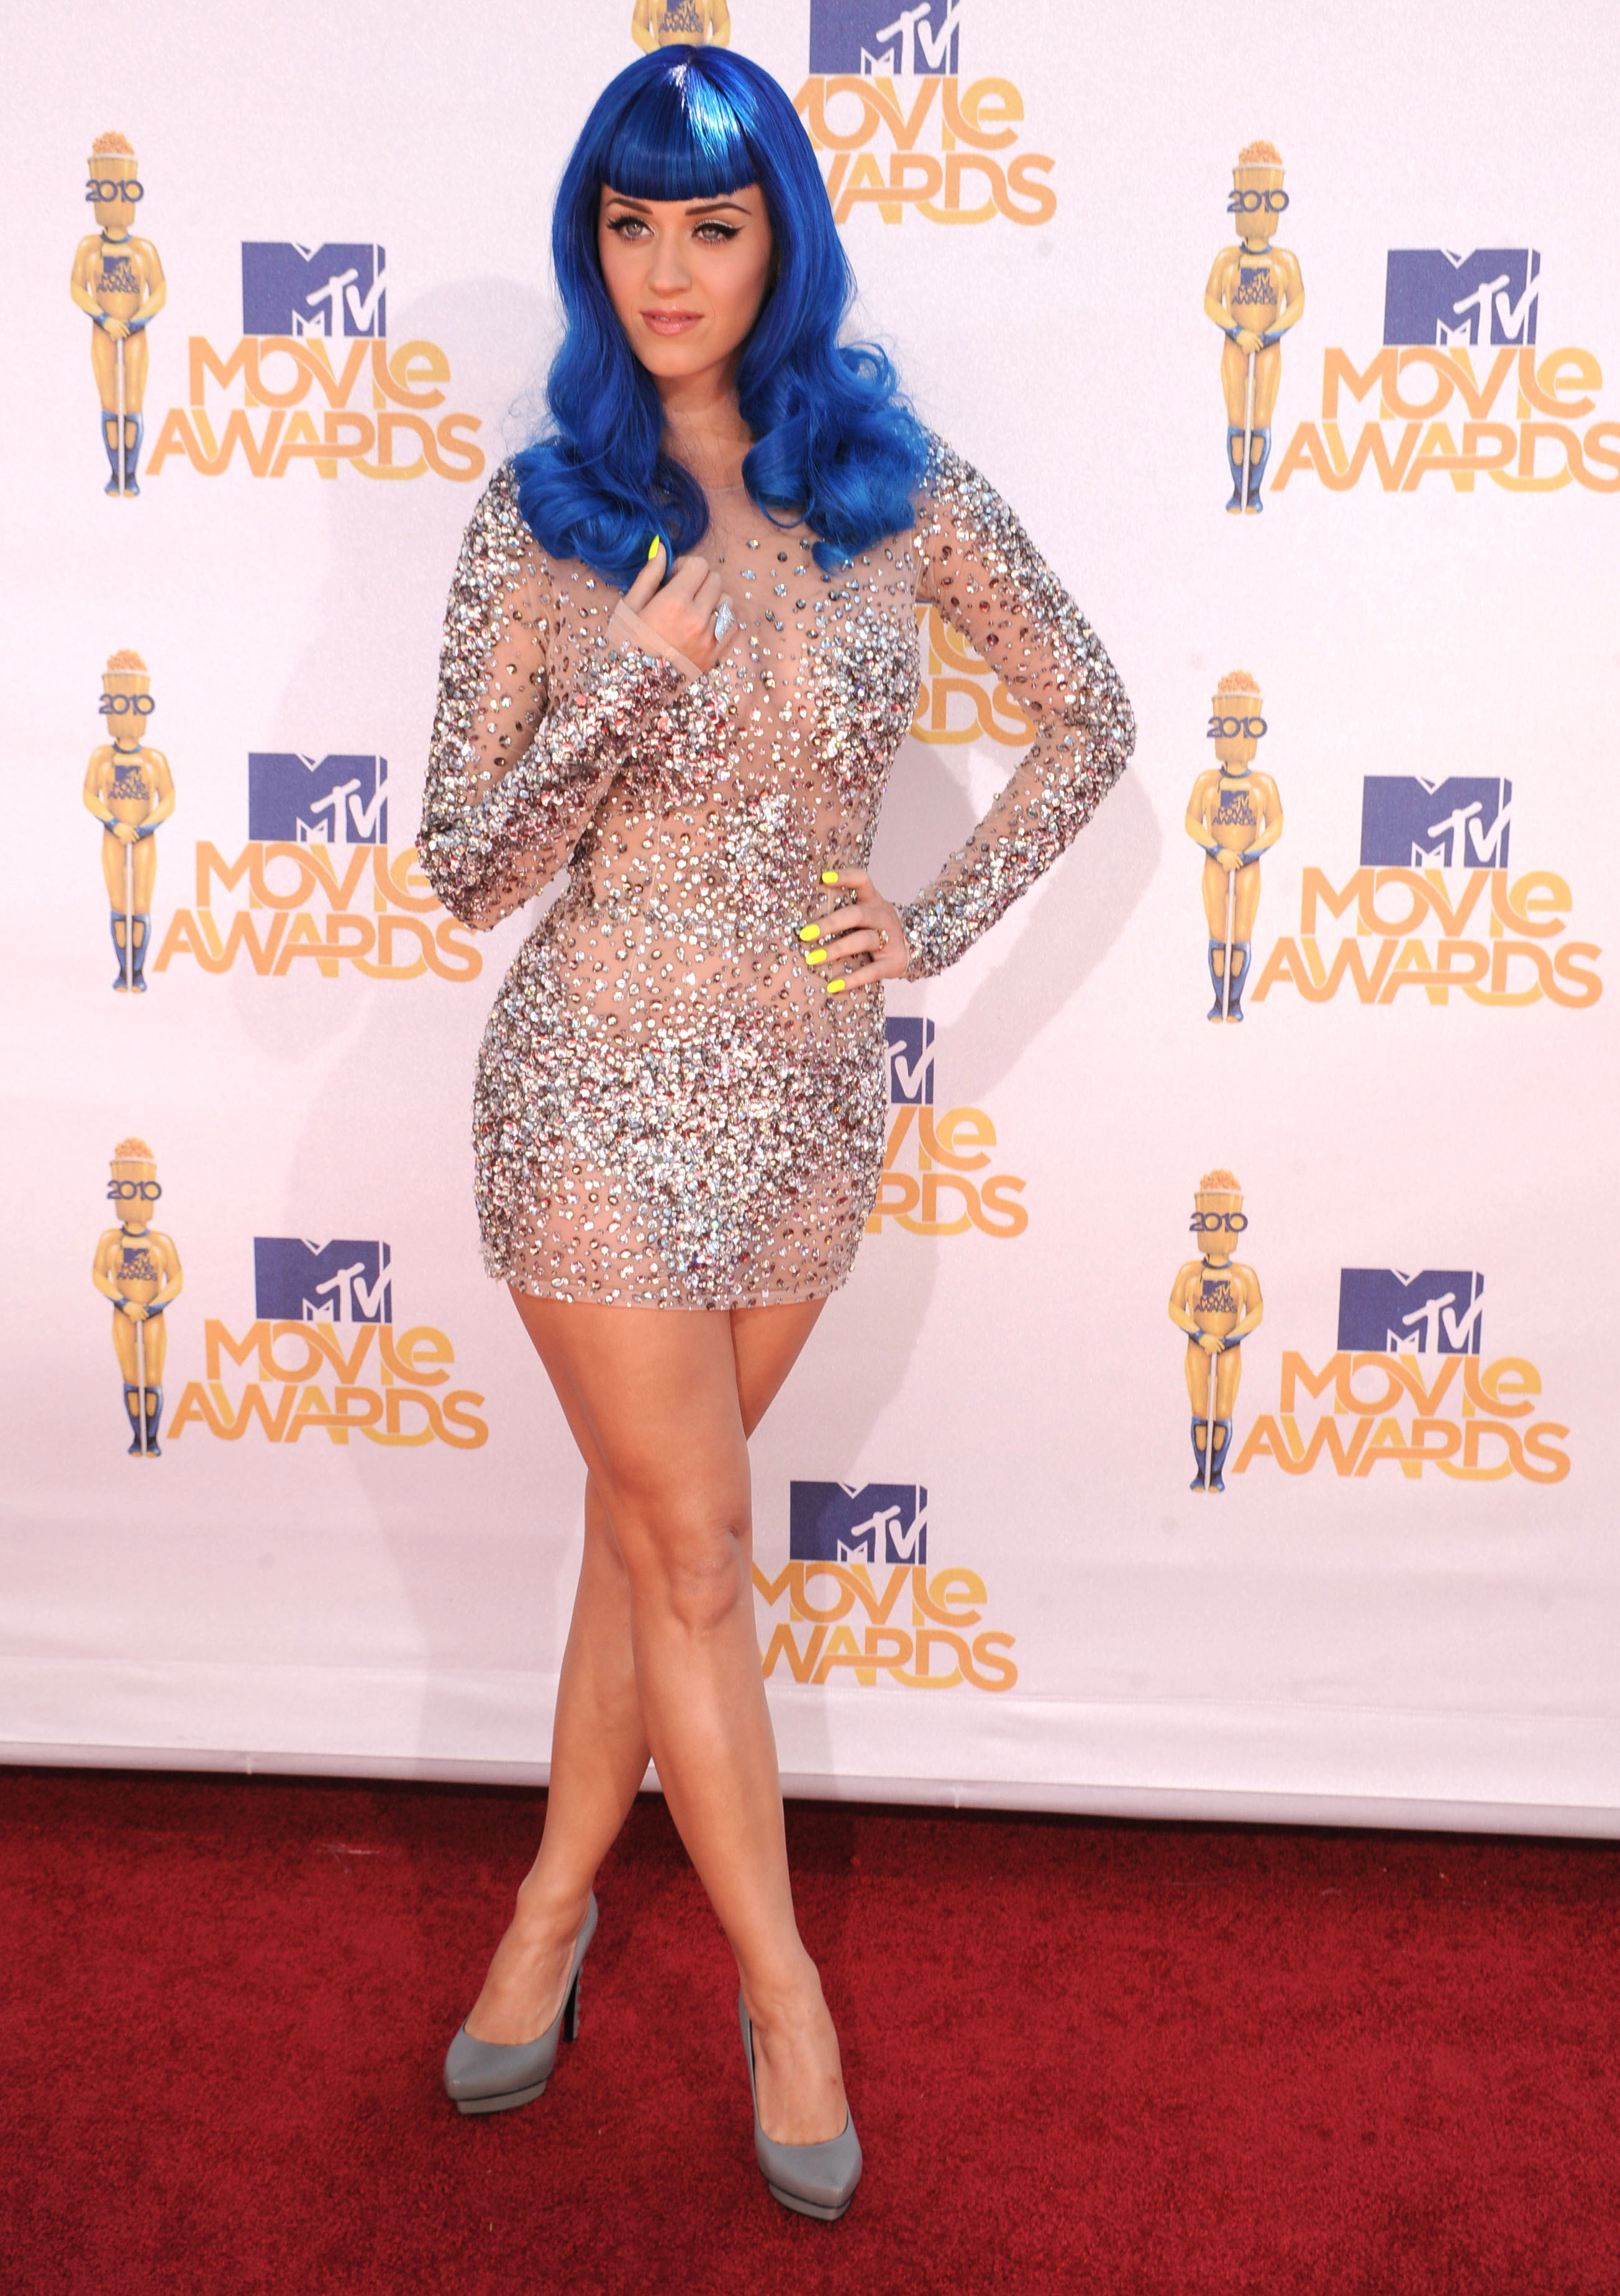 Katy Perry nude sparkly minidress